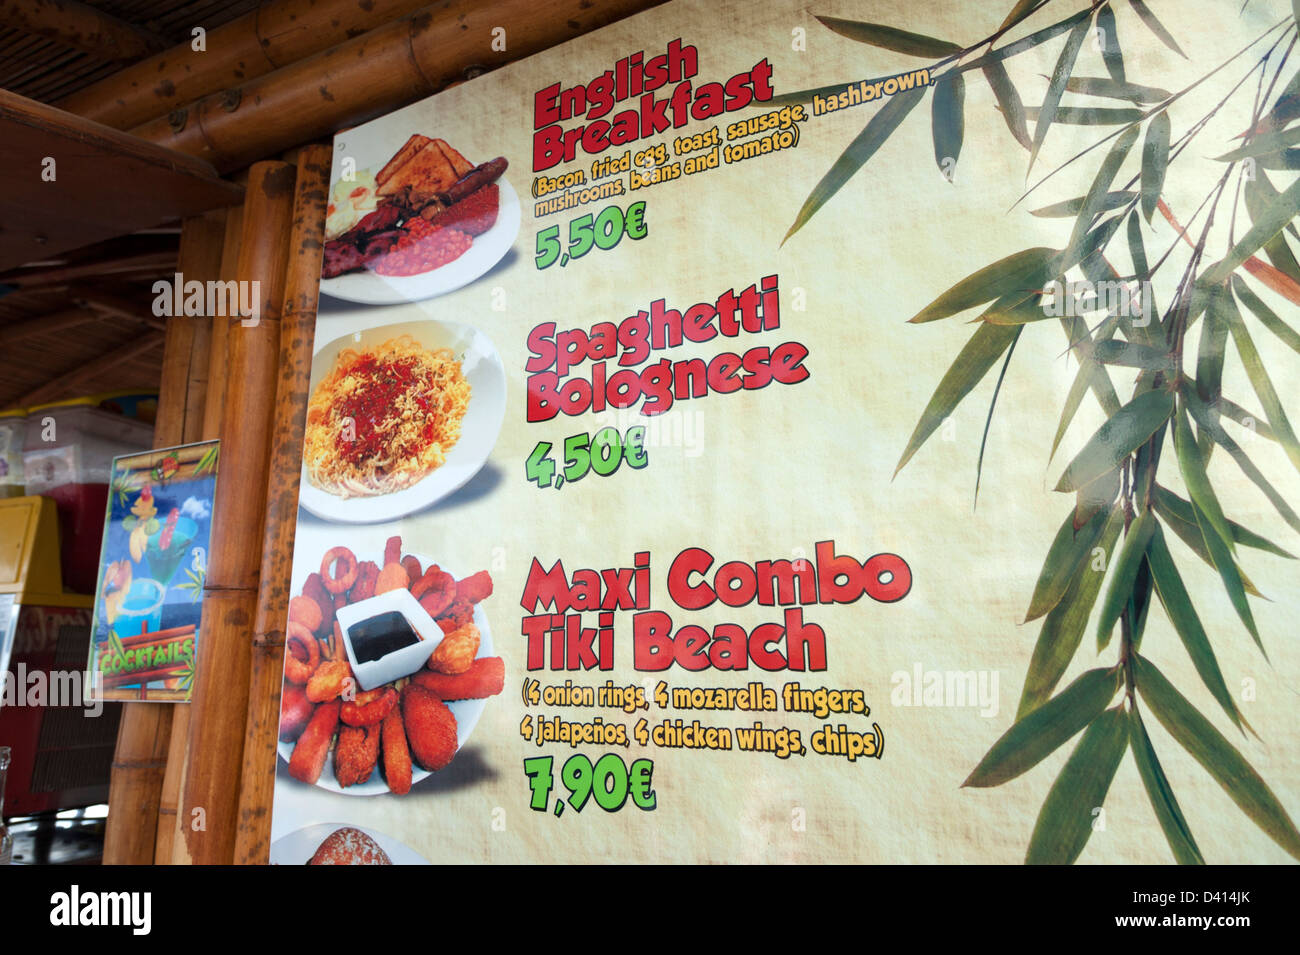 Beachfront cafe menu showing typical English food, Benidorm, Costa Blanca, Spain - Stock Image